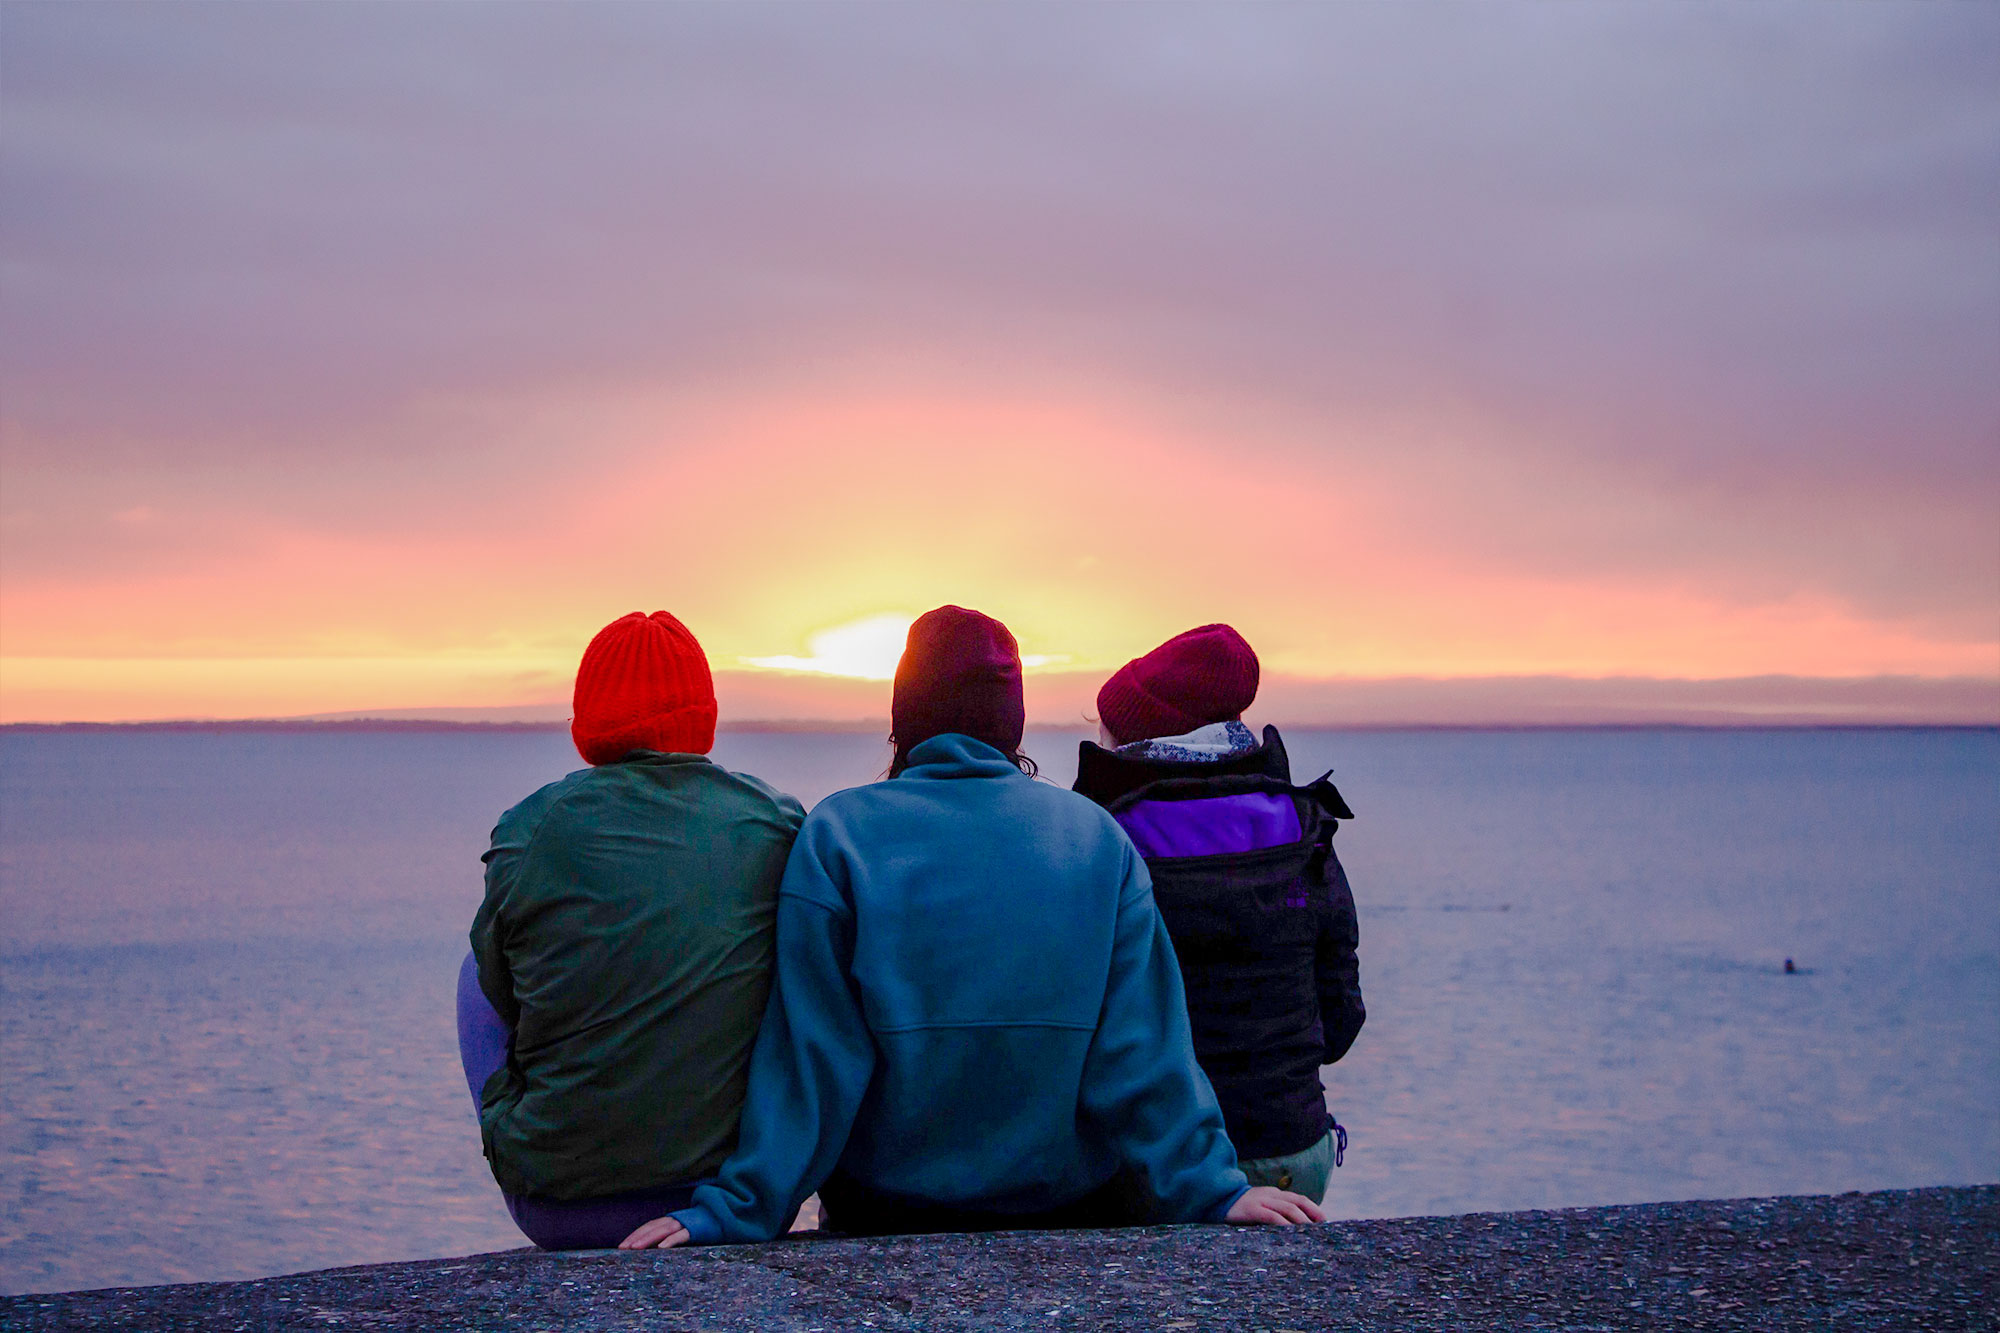 Three friends sitting watching the sunset on the Galway coast, Ireland.